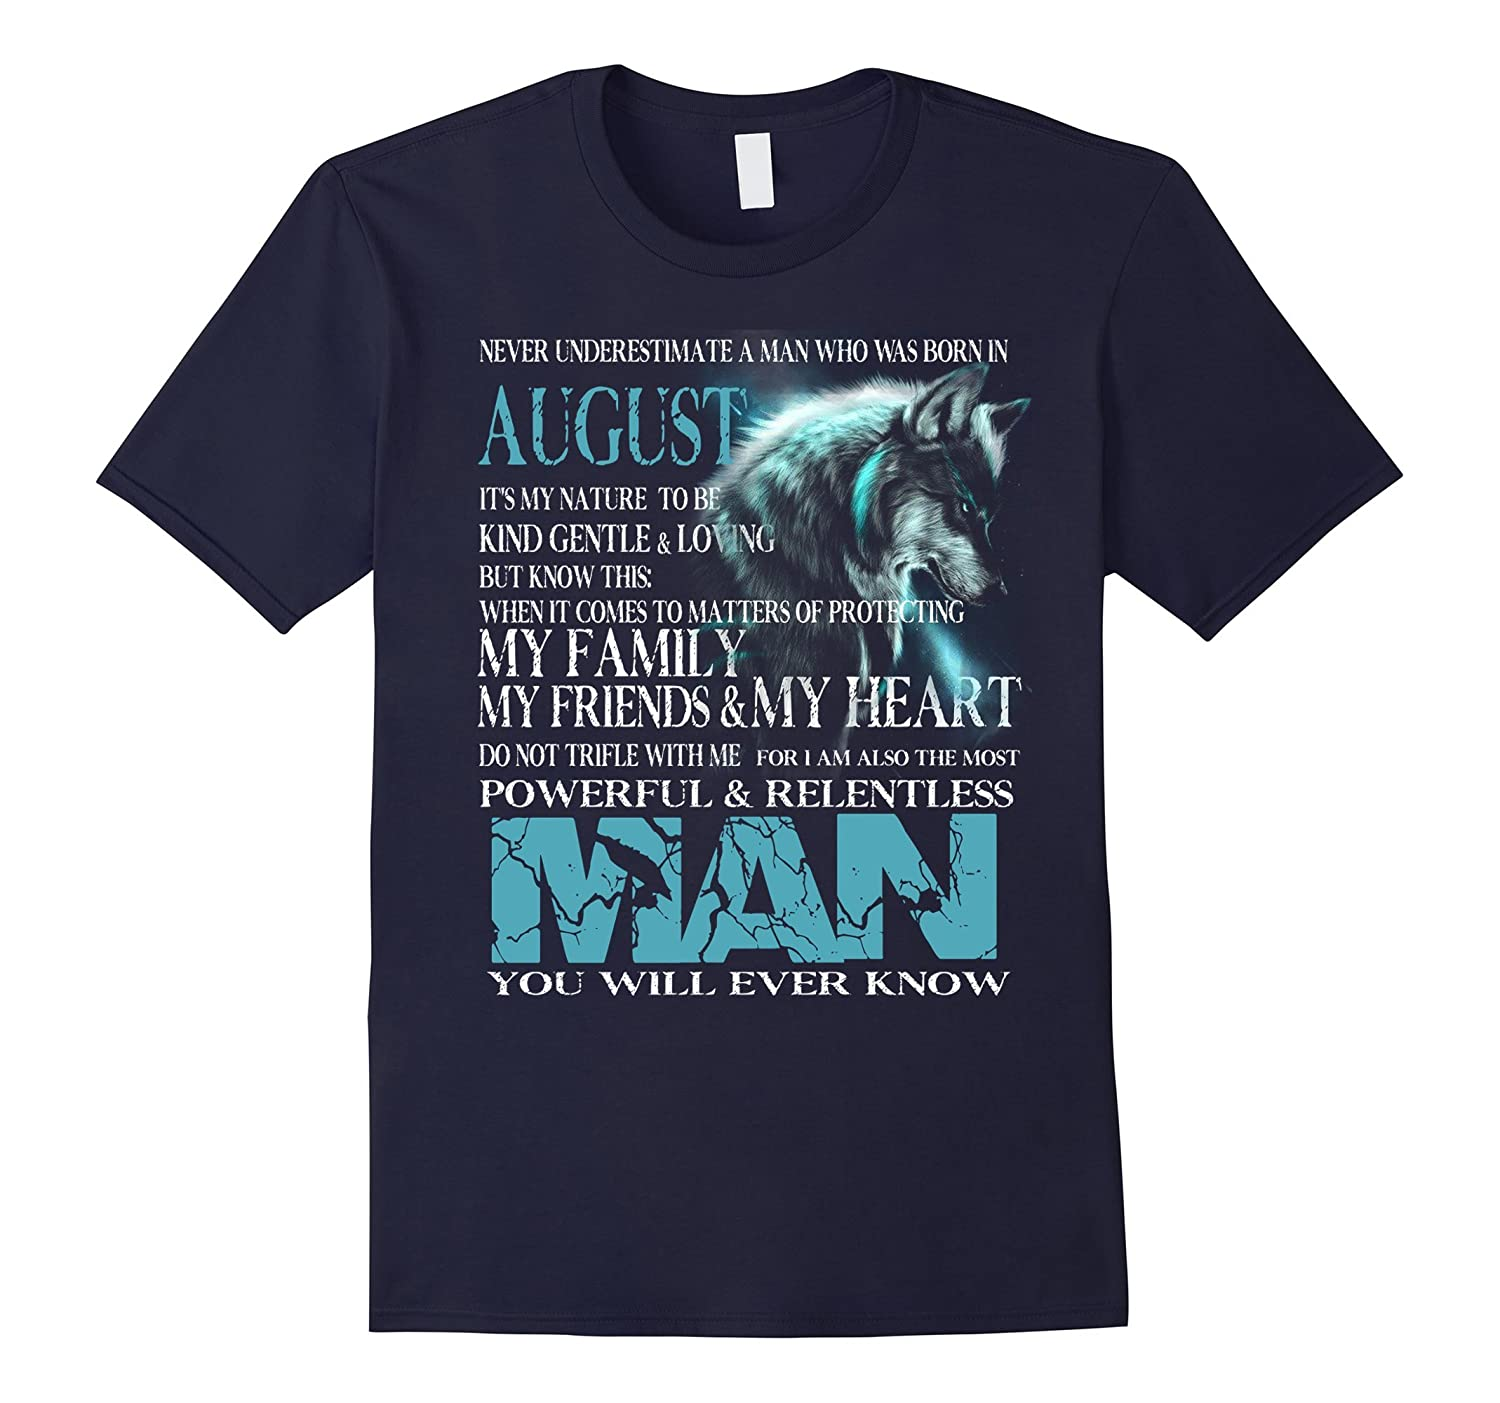 never underestimate a man who was born in August t-shirt